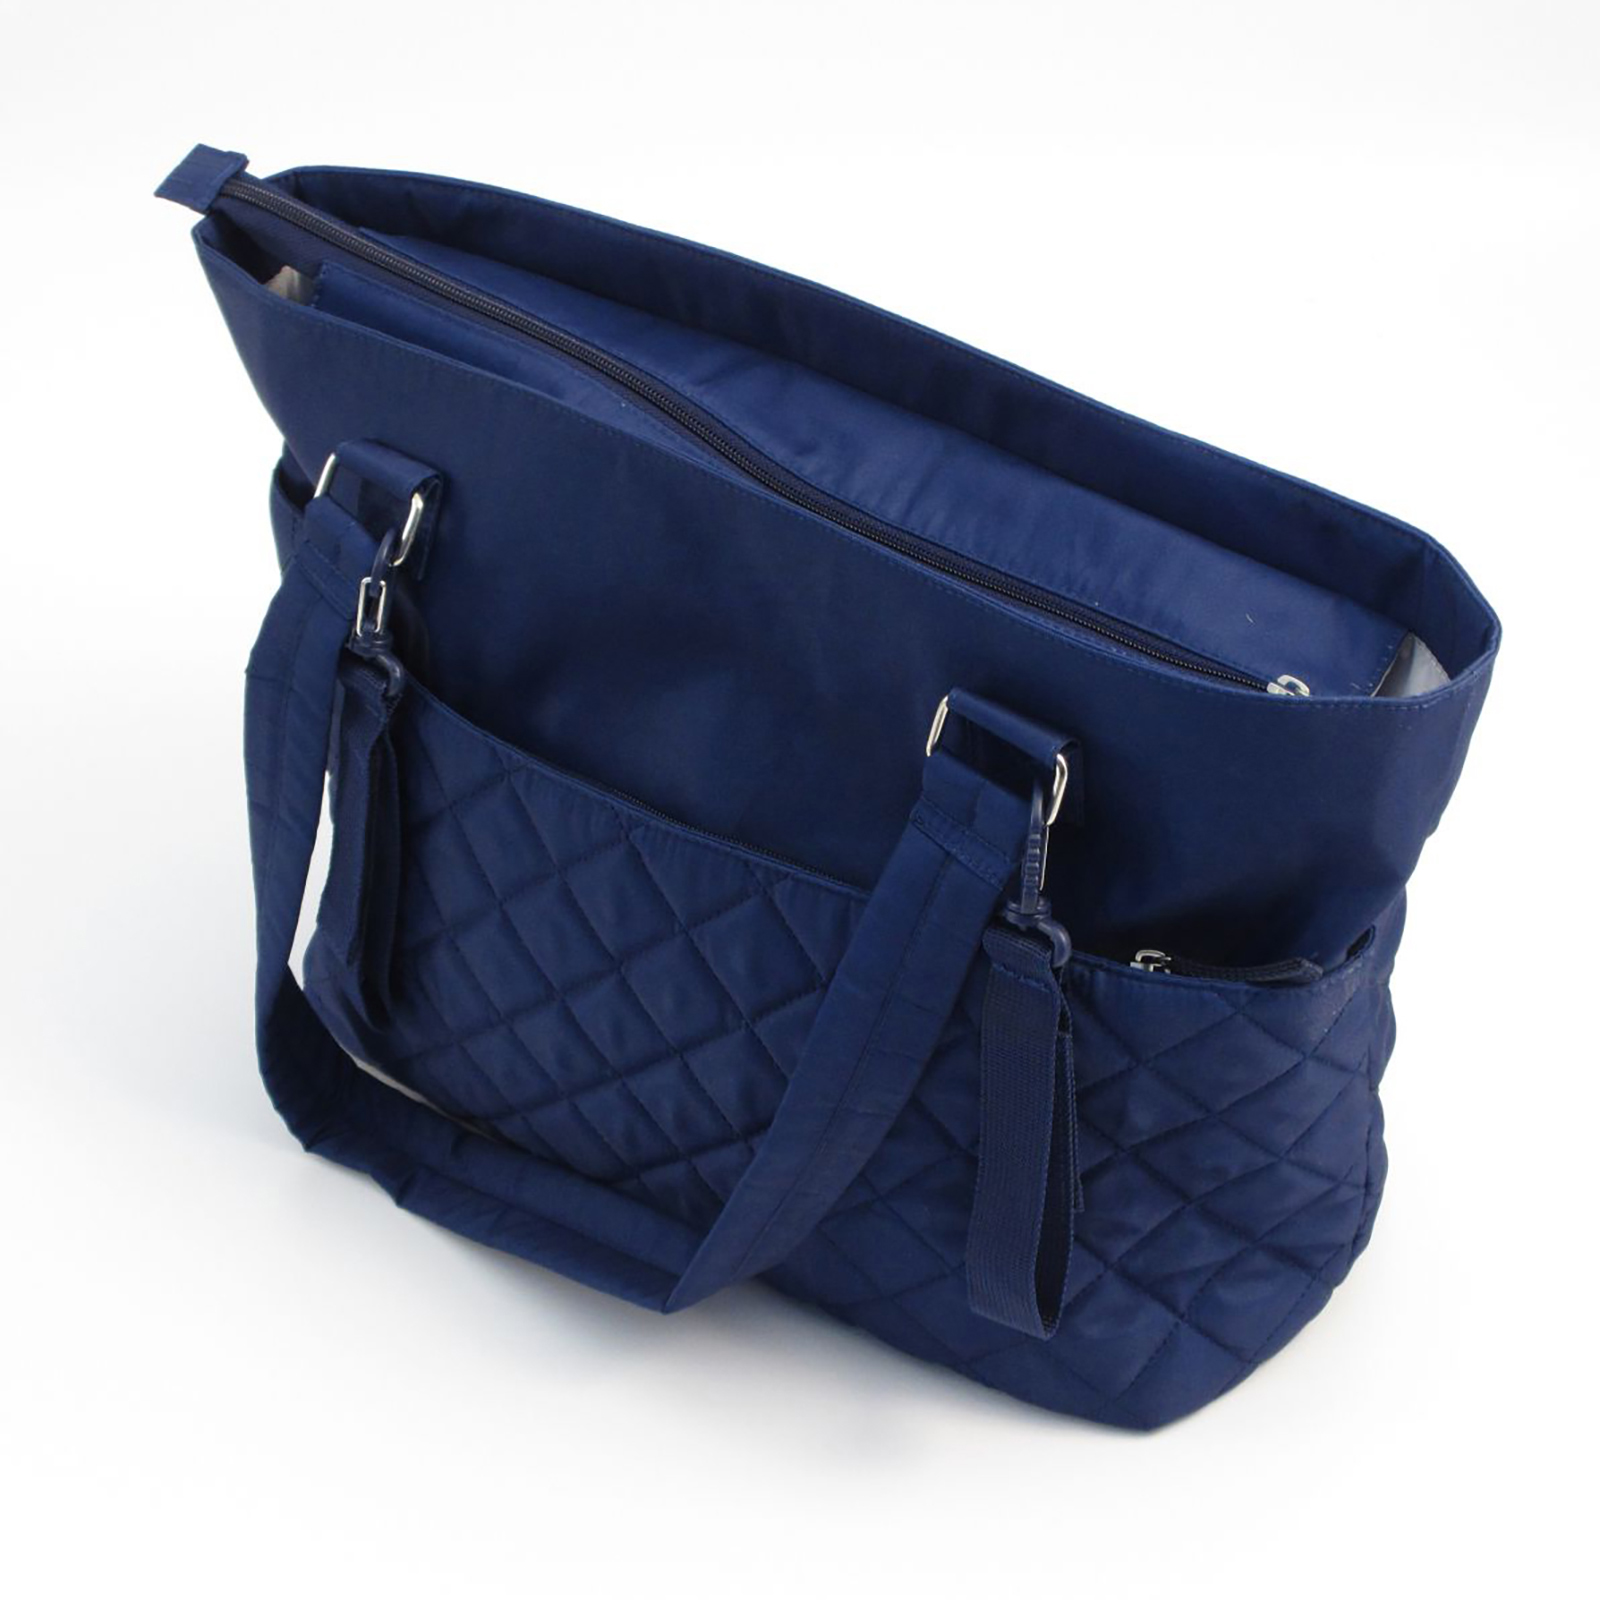 bags leather bag bk quilt with dasein products xl handles quilted chained tote faux